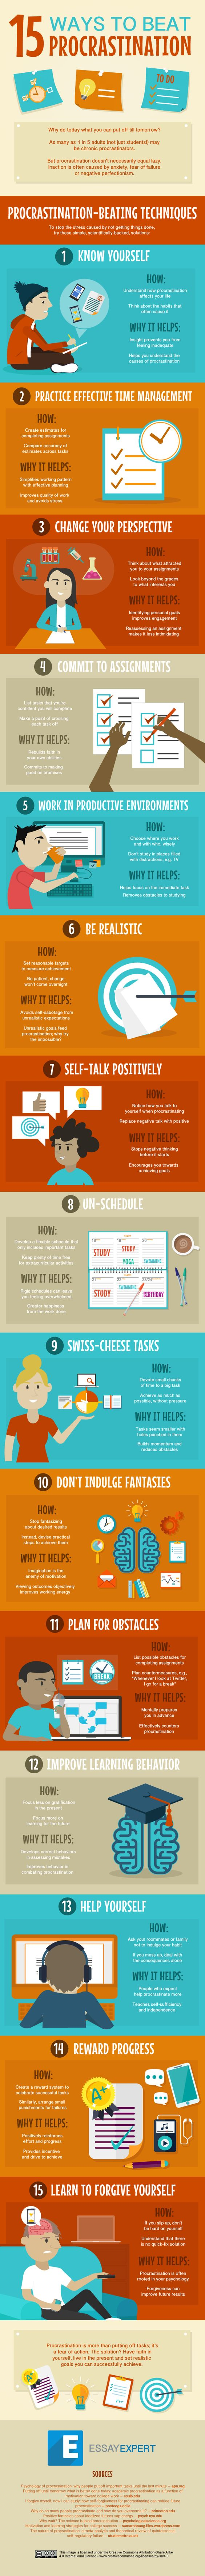 15 Procrastination-Beating Techniques to Boost Productivity (Infographic)   Inc.com